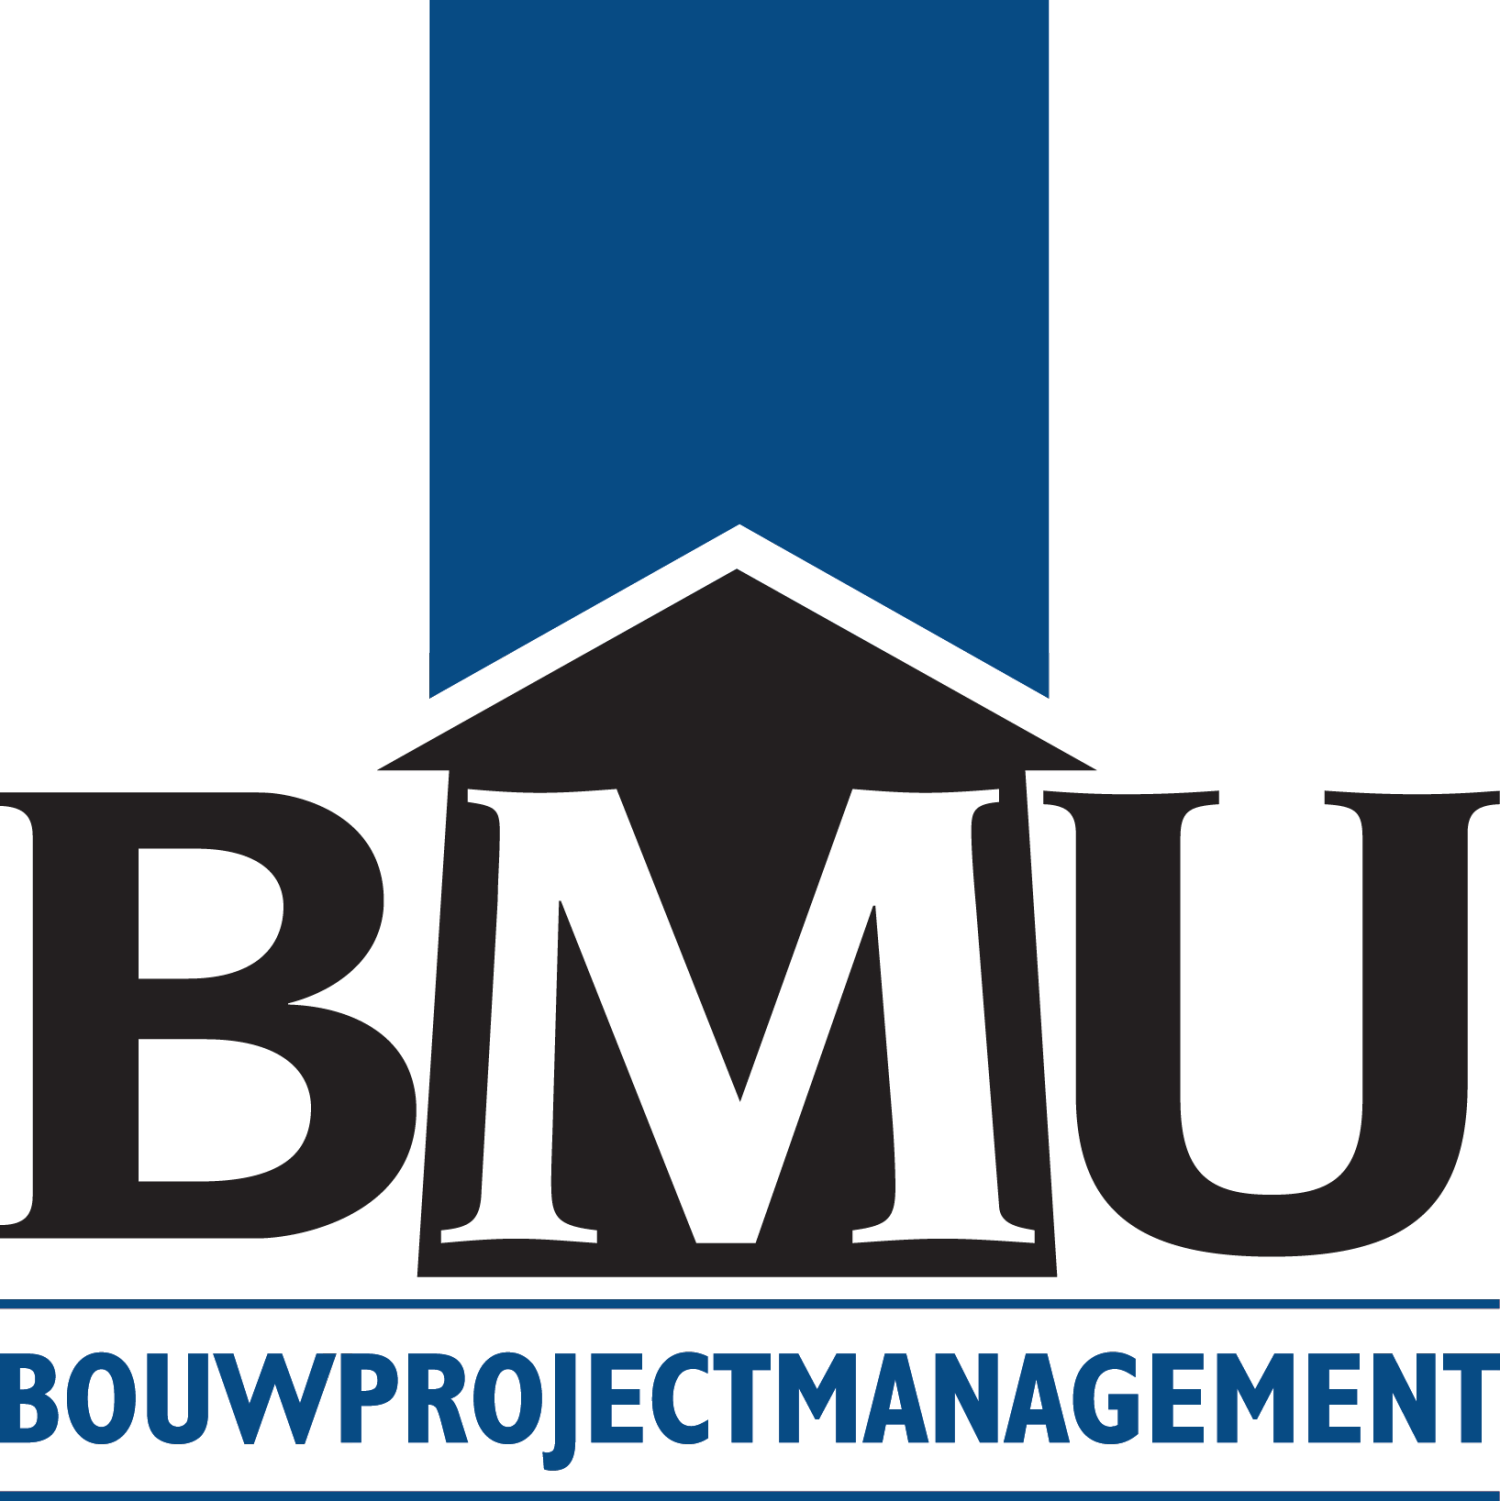 BMU Bouwprojectmanagement